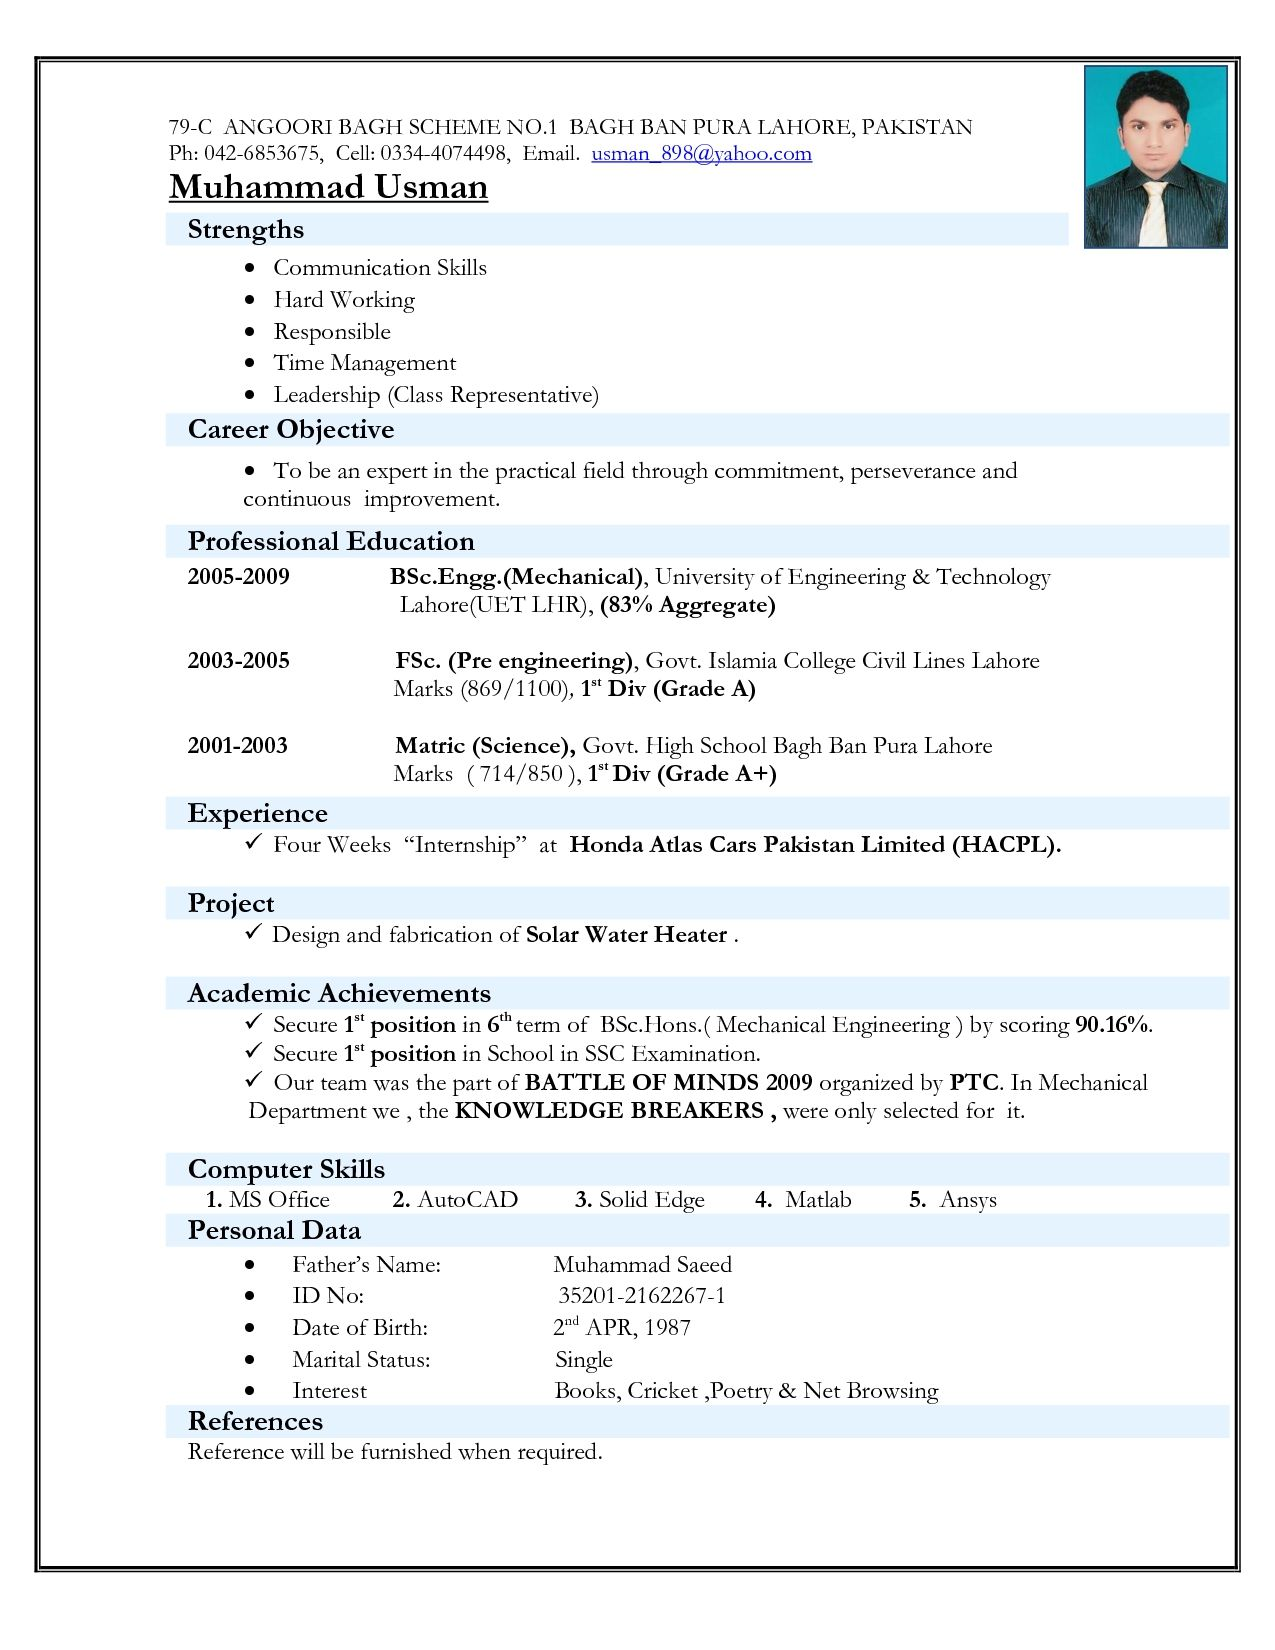 cv format for engineers resume freshers job best experienced account executive keywords Resume Best Resume Format For Experienced Engineers